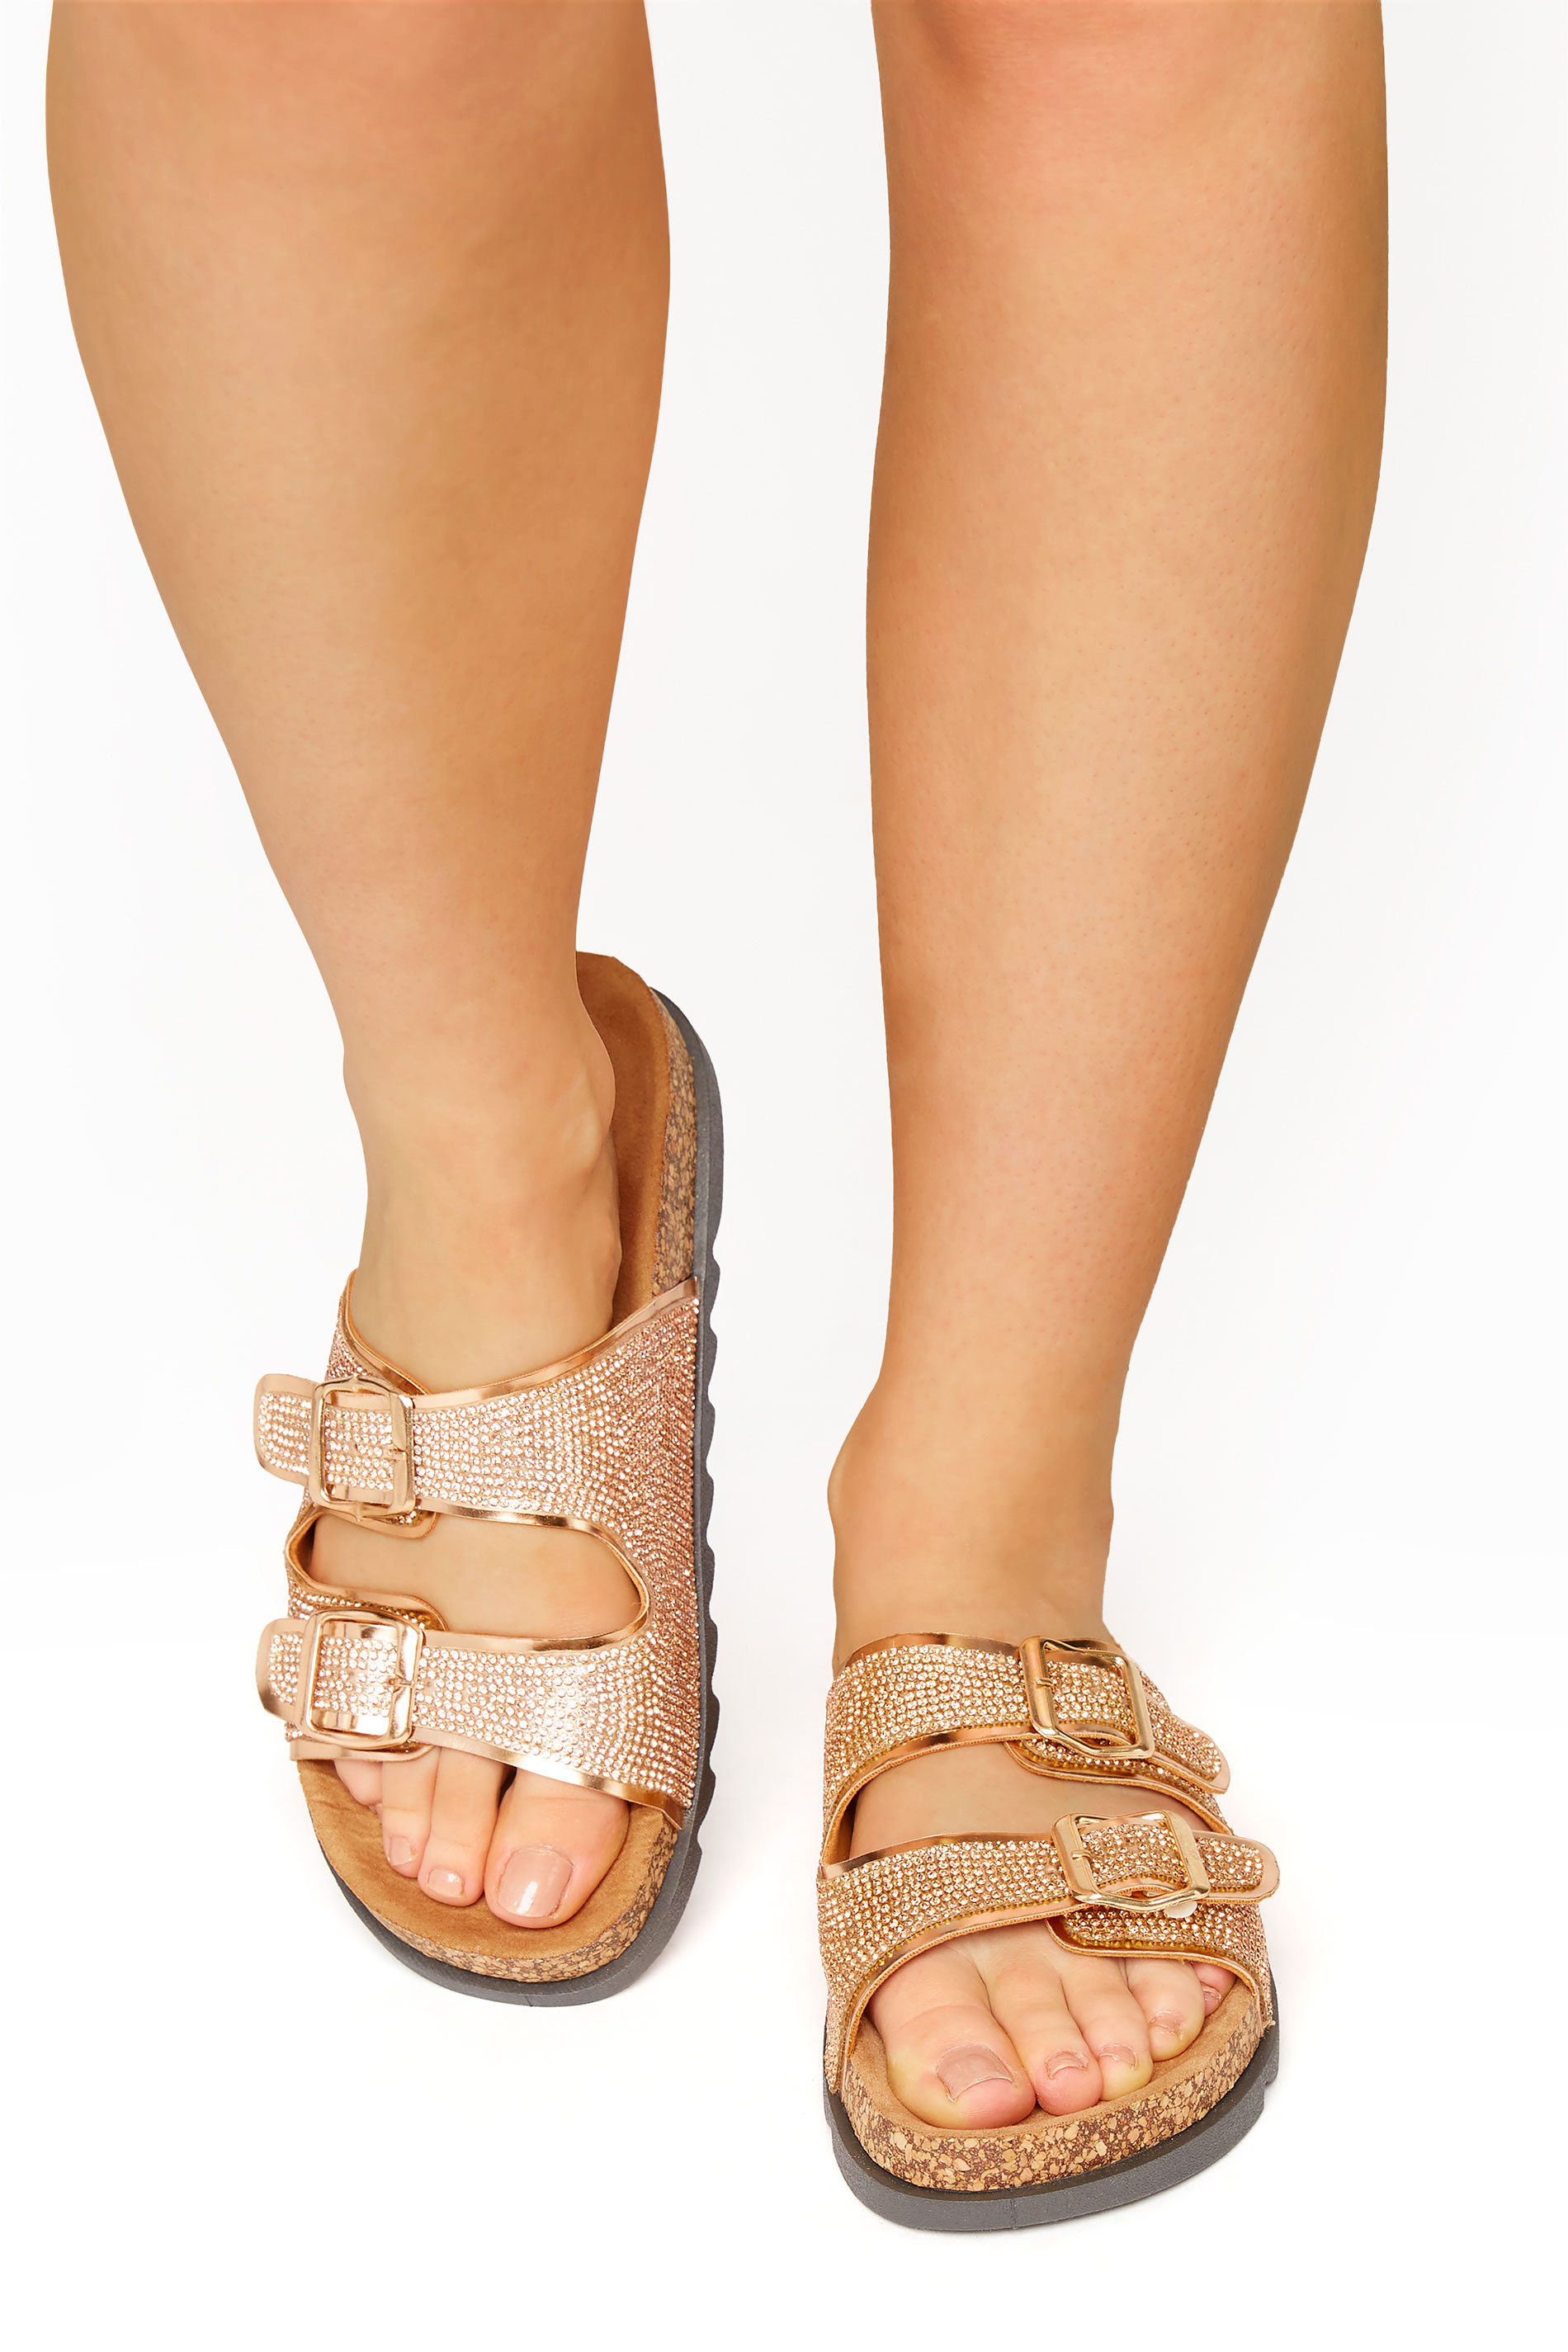 Yours Rose Gold Sparkle Footbed Sandal In Wide Fit